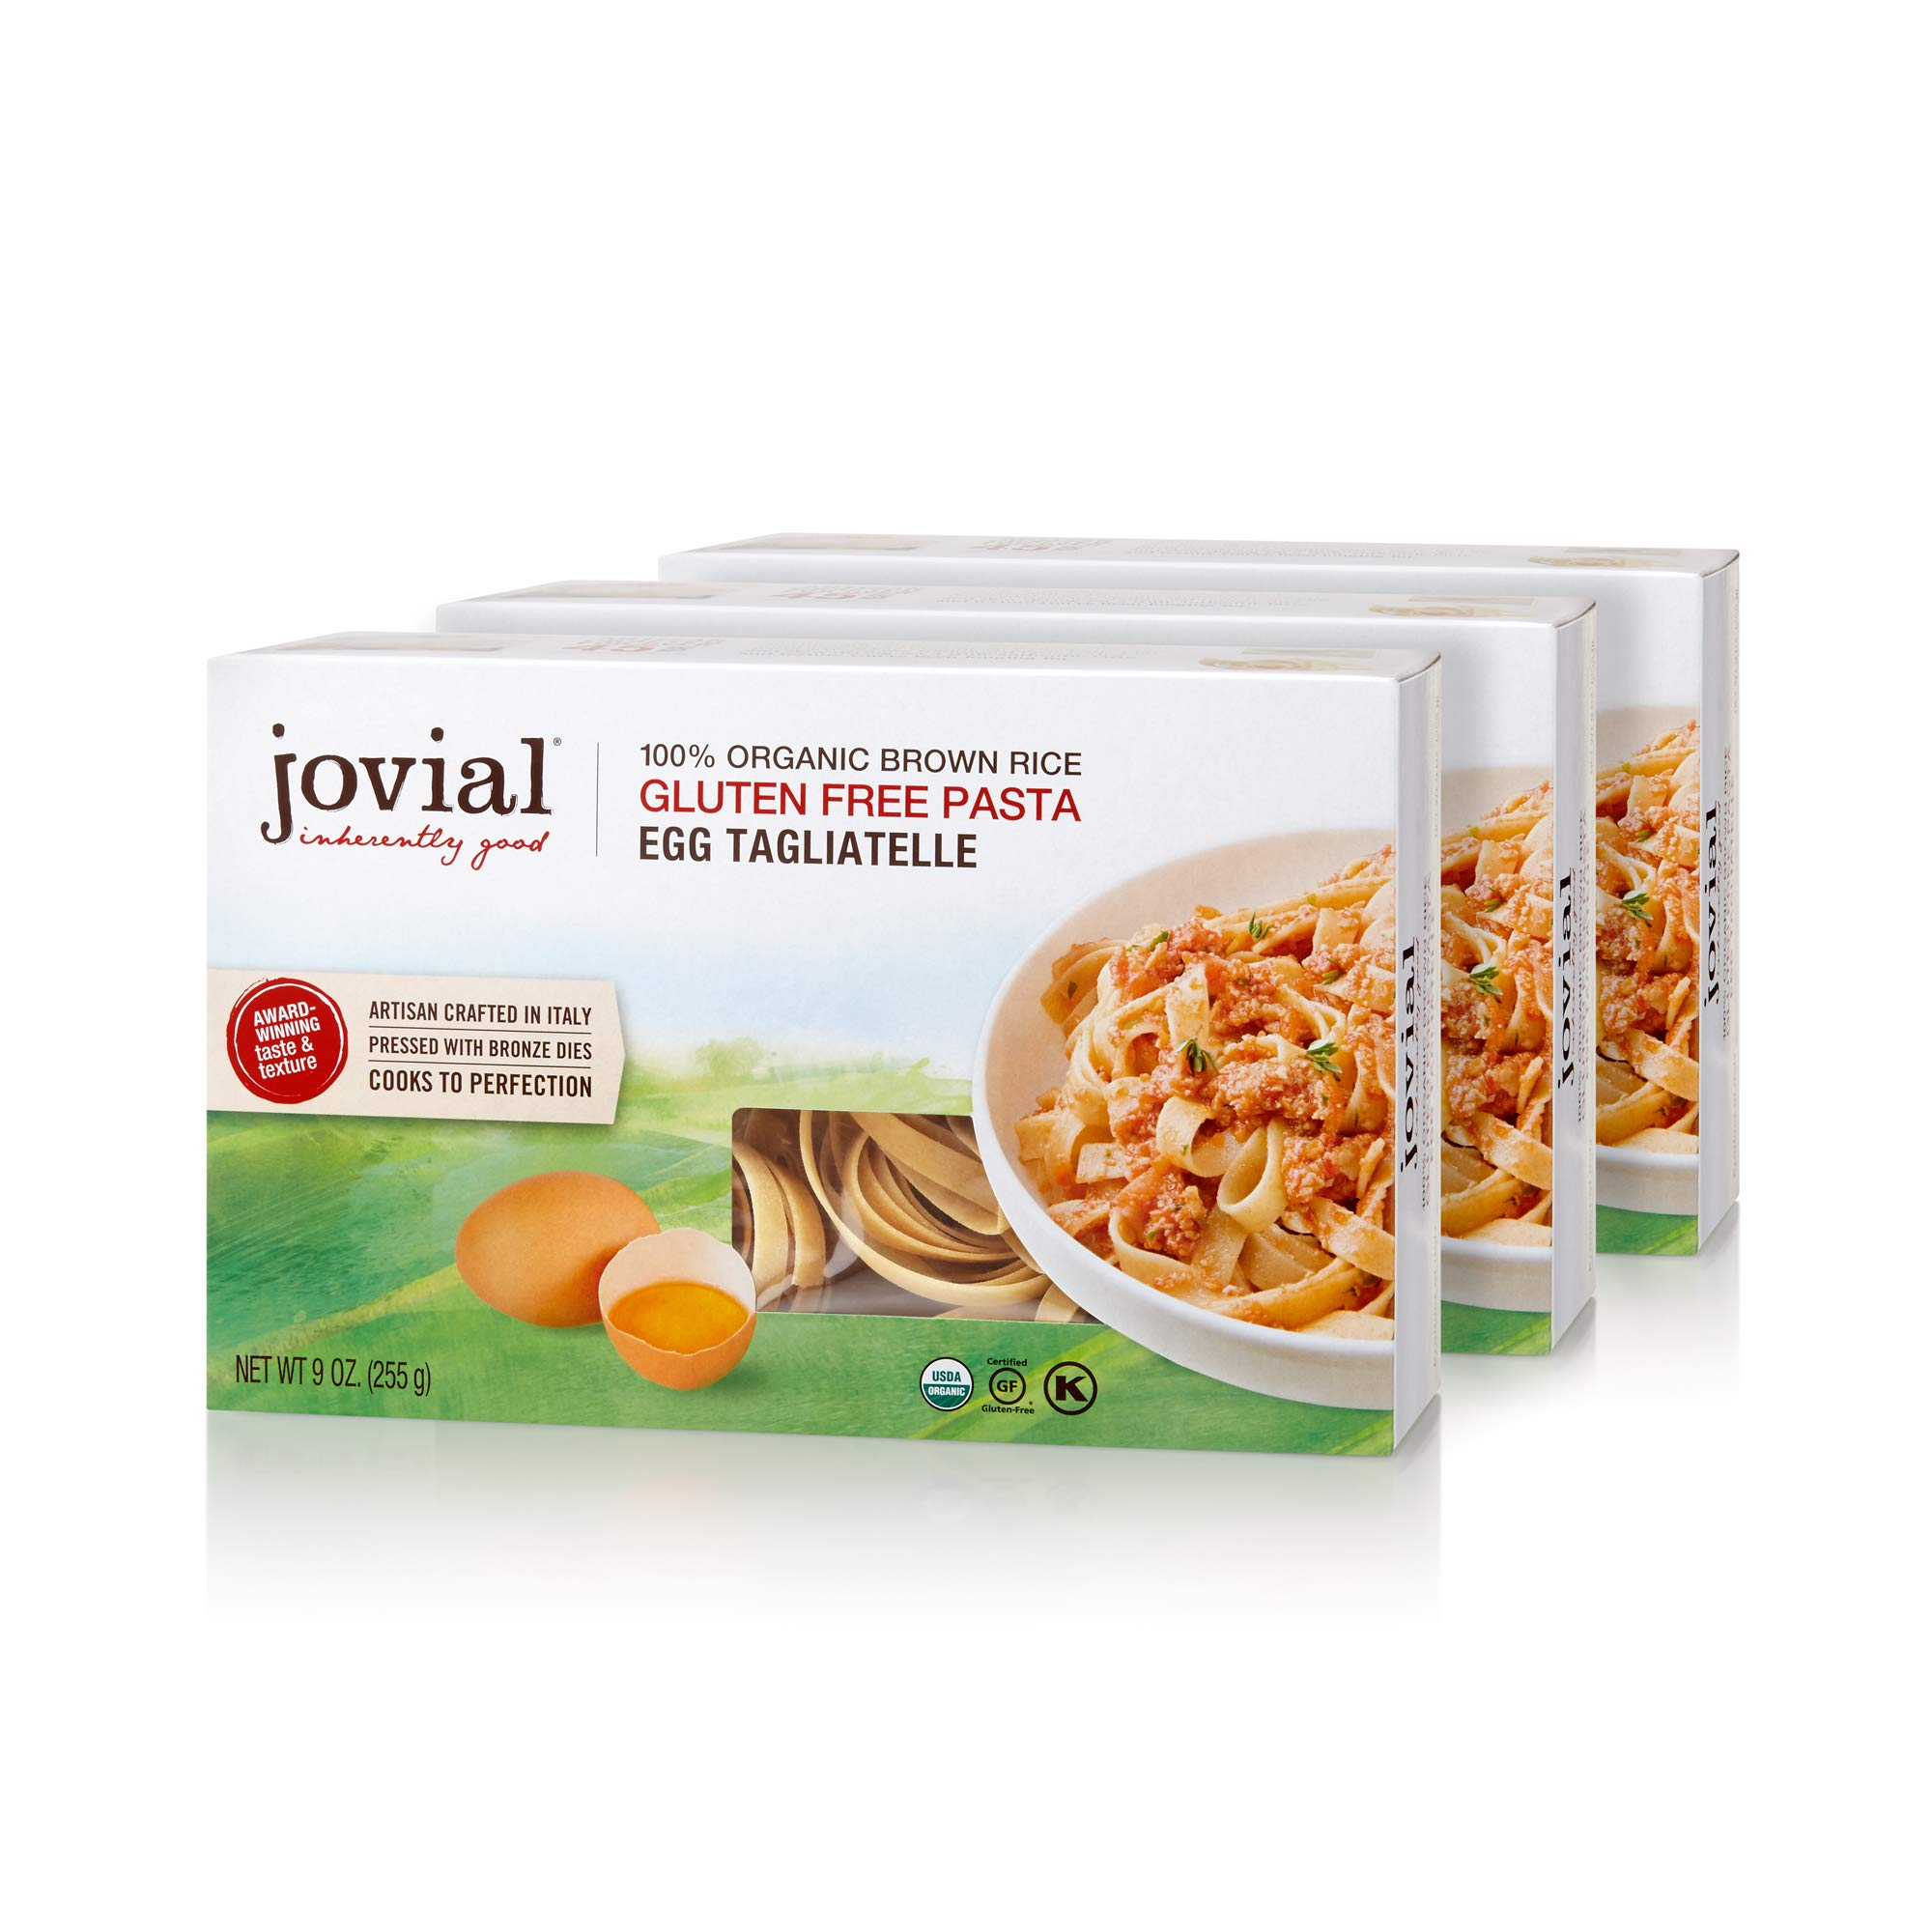 Jovial 100% Organic Gluten Free Brown Rice Pasta, Tagliatelle, 4 Count by Jovial